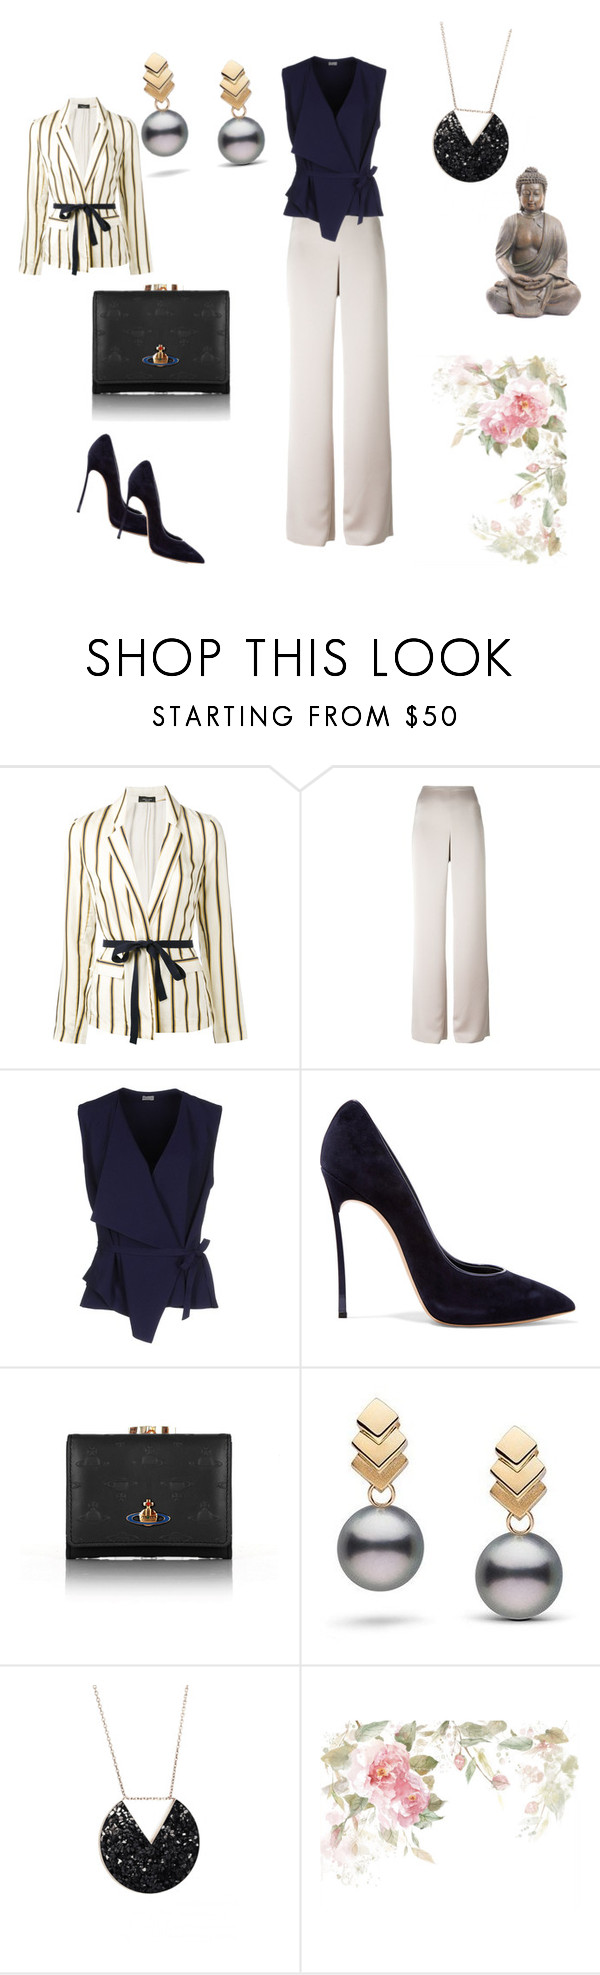 """""""Untitled #209"""" by suada24-07 ❤ liked on Polyvore featuring Roberto Collina, Armani Collezioni, Mantù, Casadei, Vivienne Westwood and Escalier"""